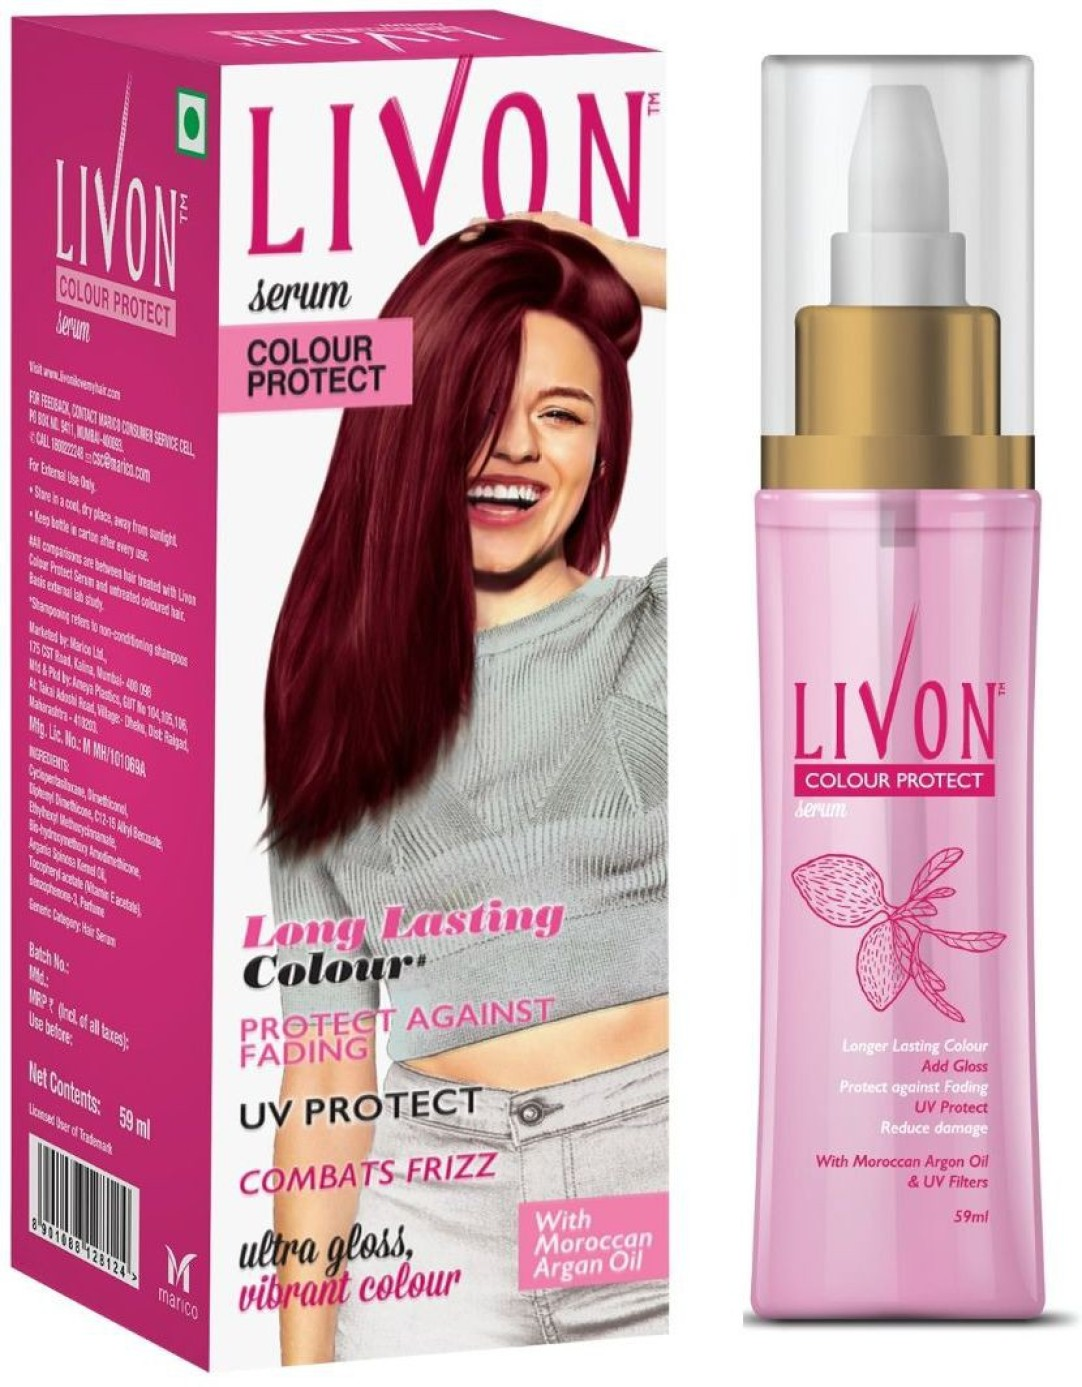 Livon Color Protect Hair Serum (59 ml) Rs.138